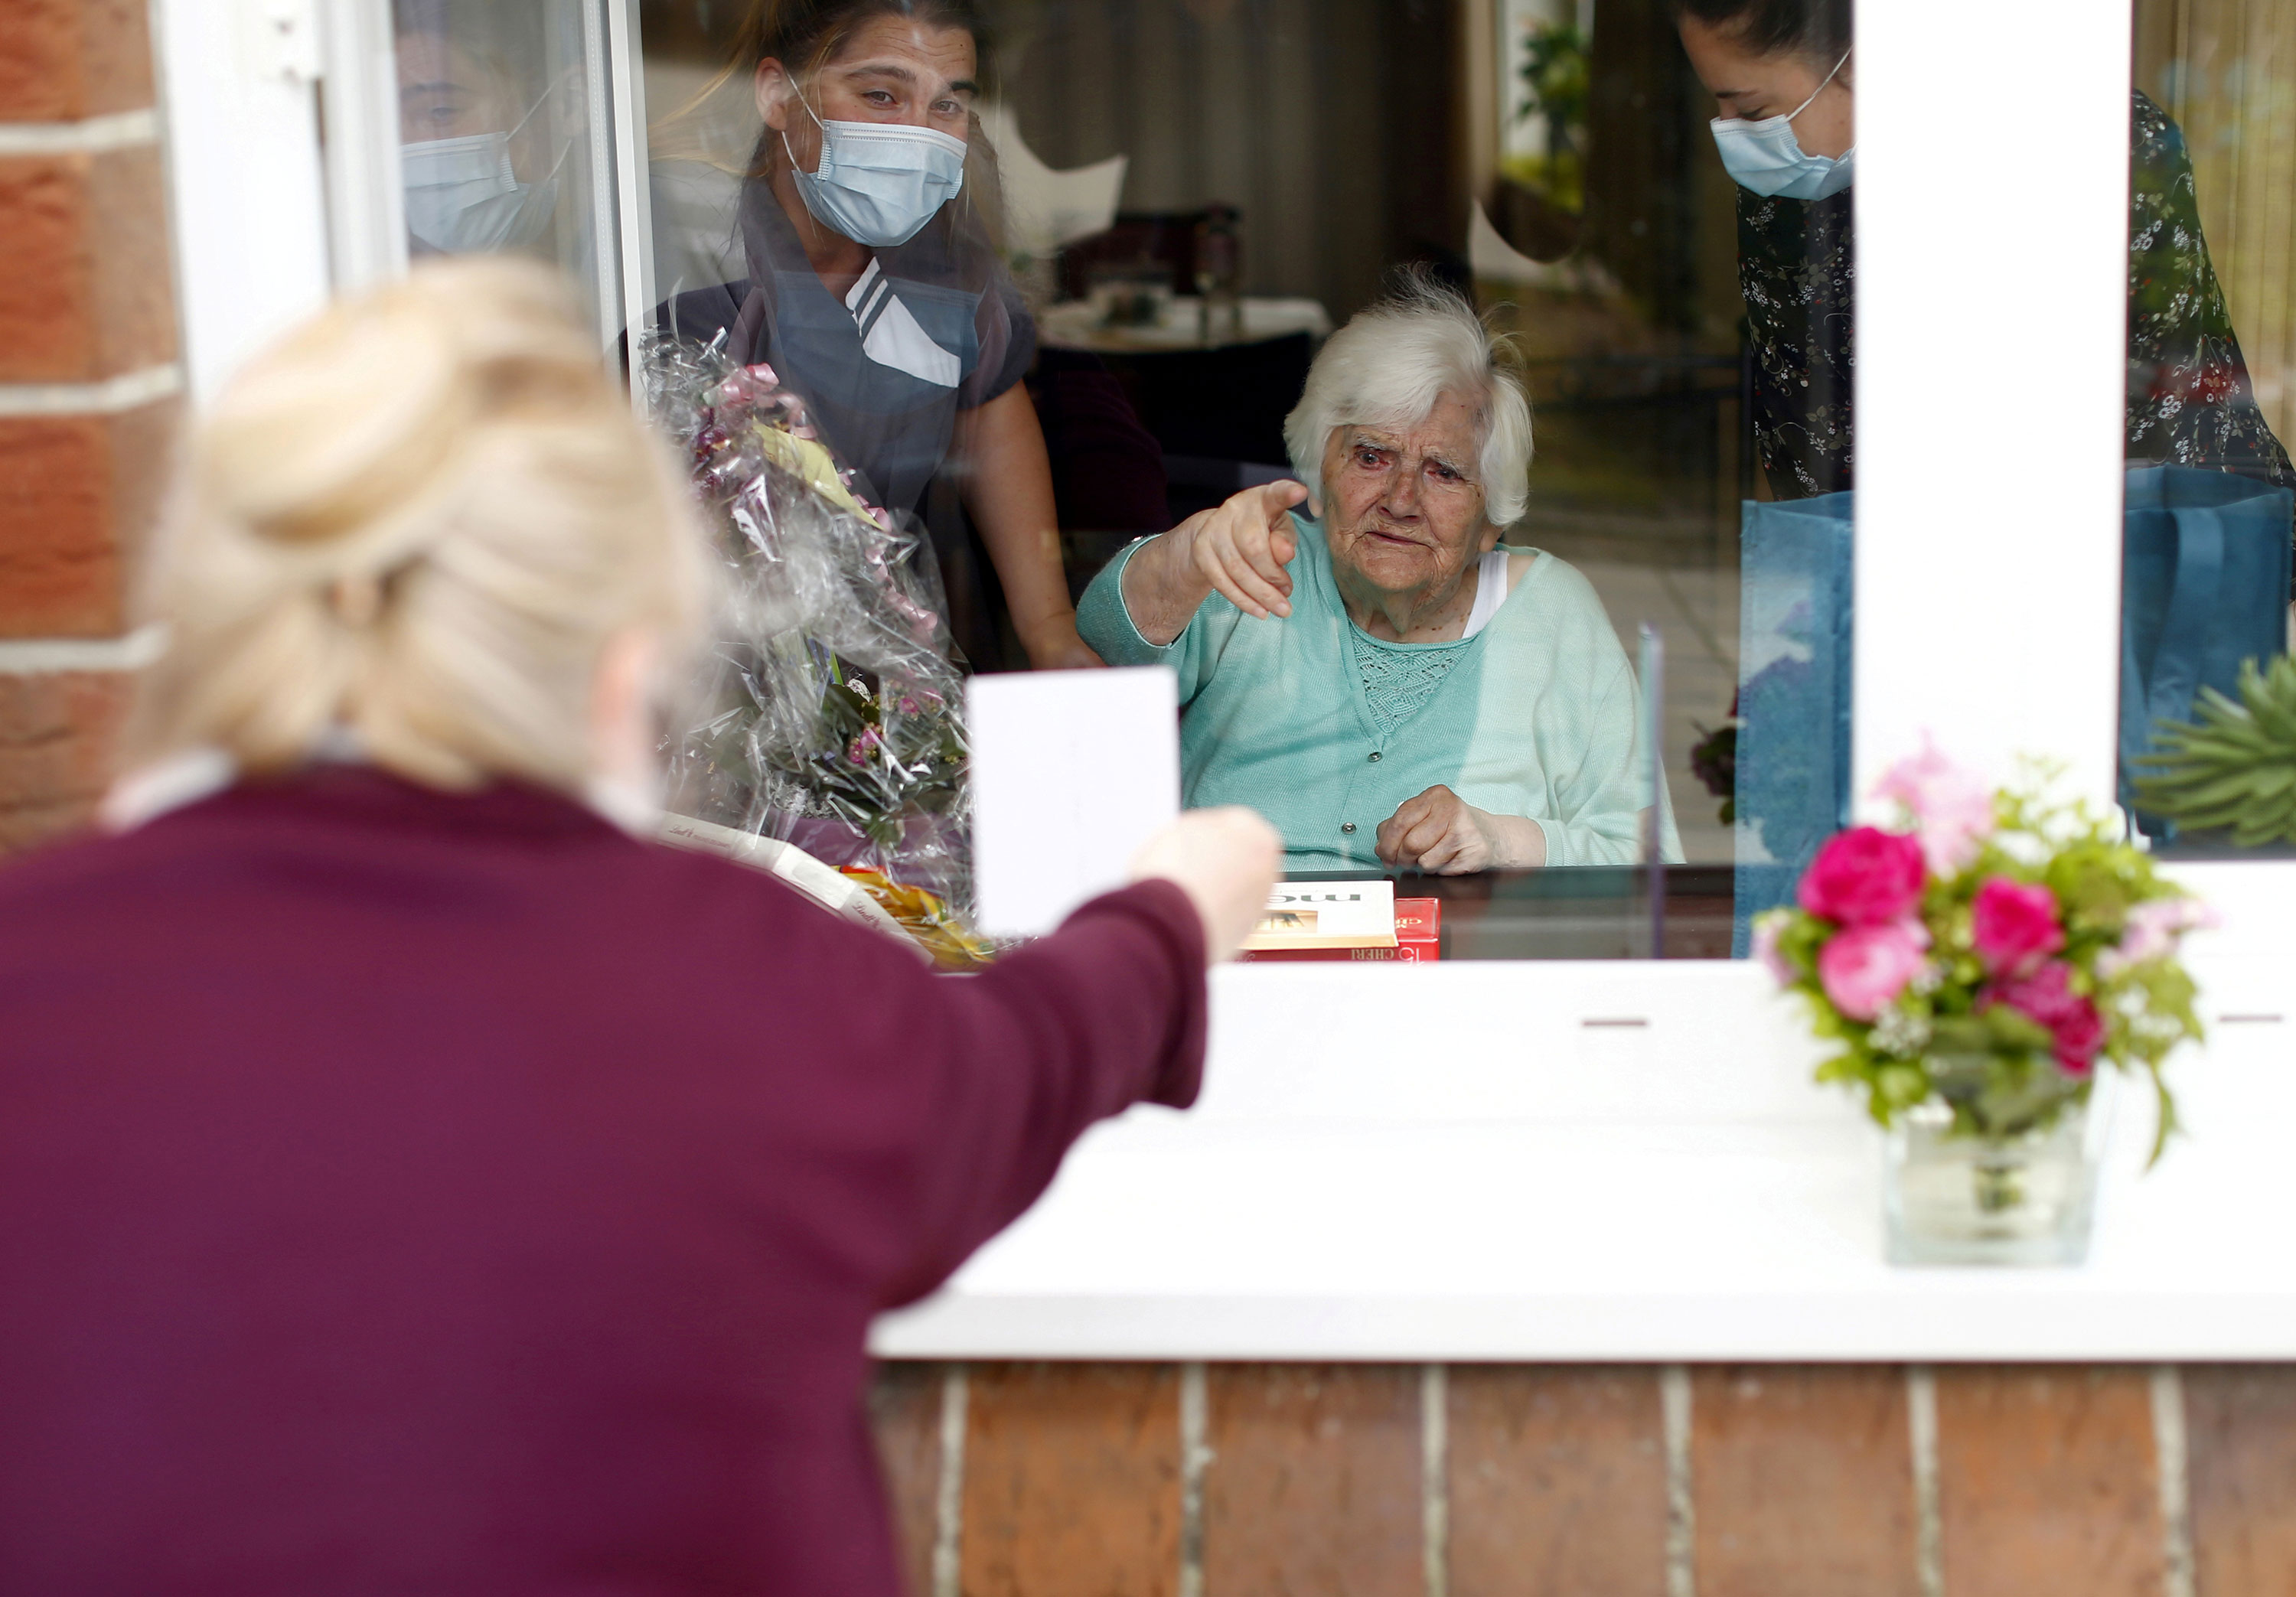 A woman shows family pictures to her mother through a window in Neuss, Germany, on Mother's Day, May 10.